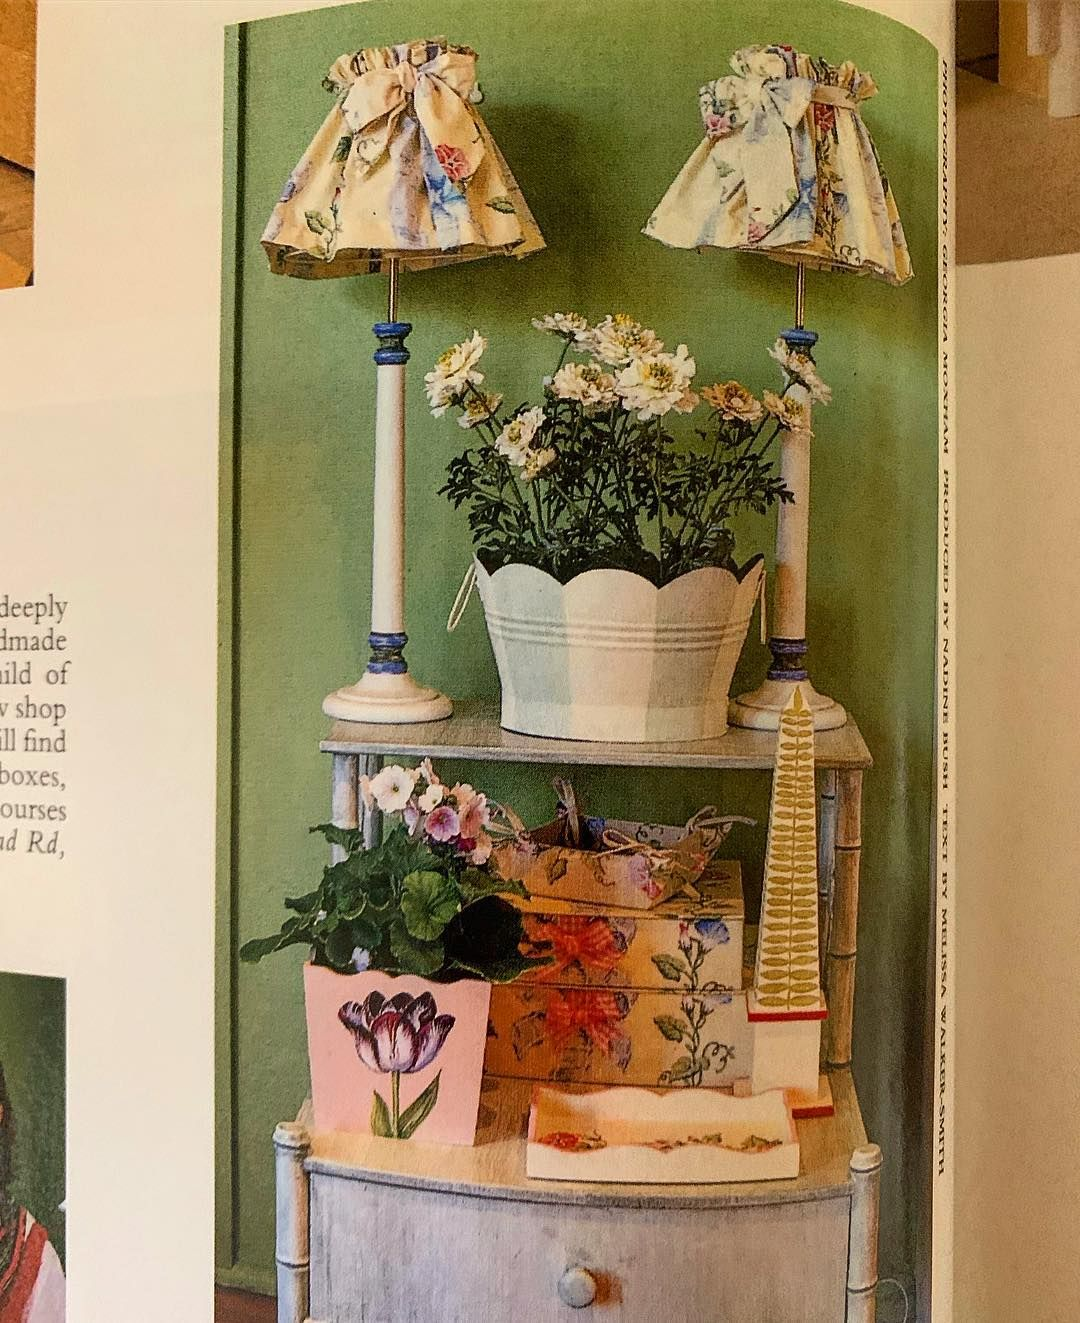 Pigott S Store 1990 S Belle Magazine Article Melissa Penfold Ladder Decor Belle Magazine Interior And Exterior